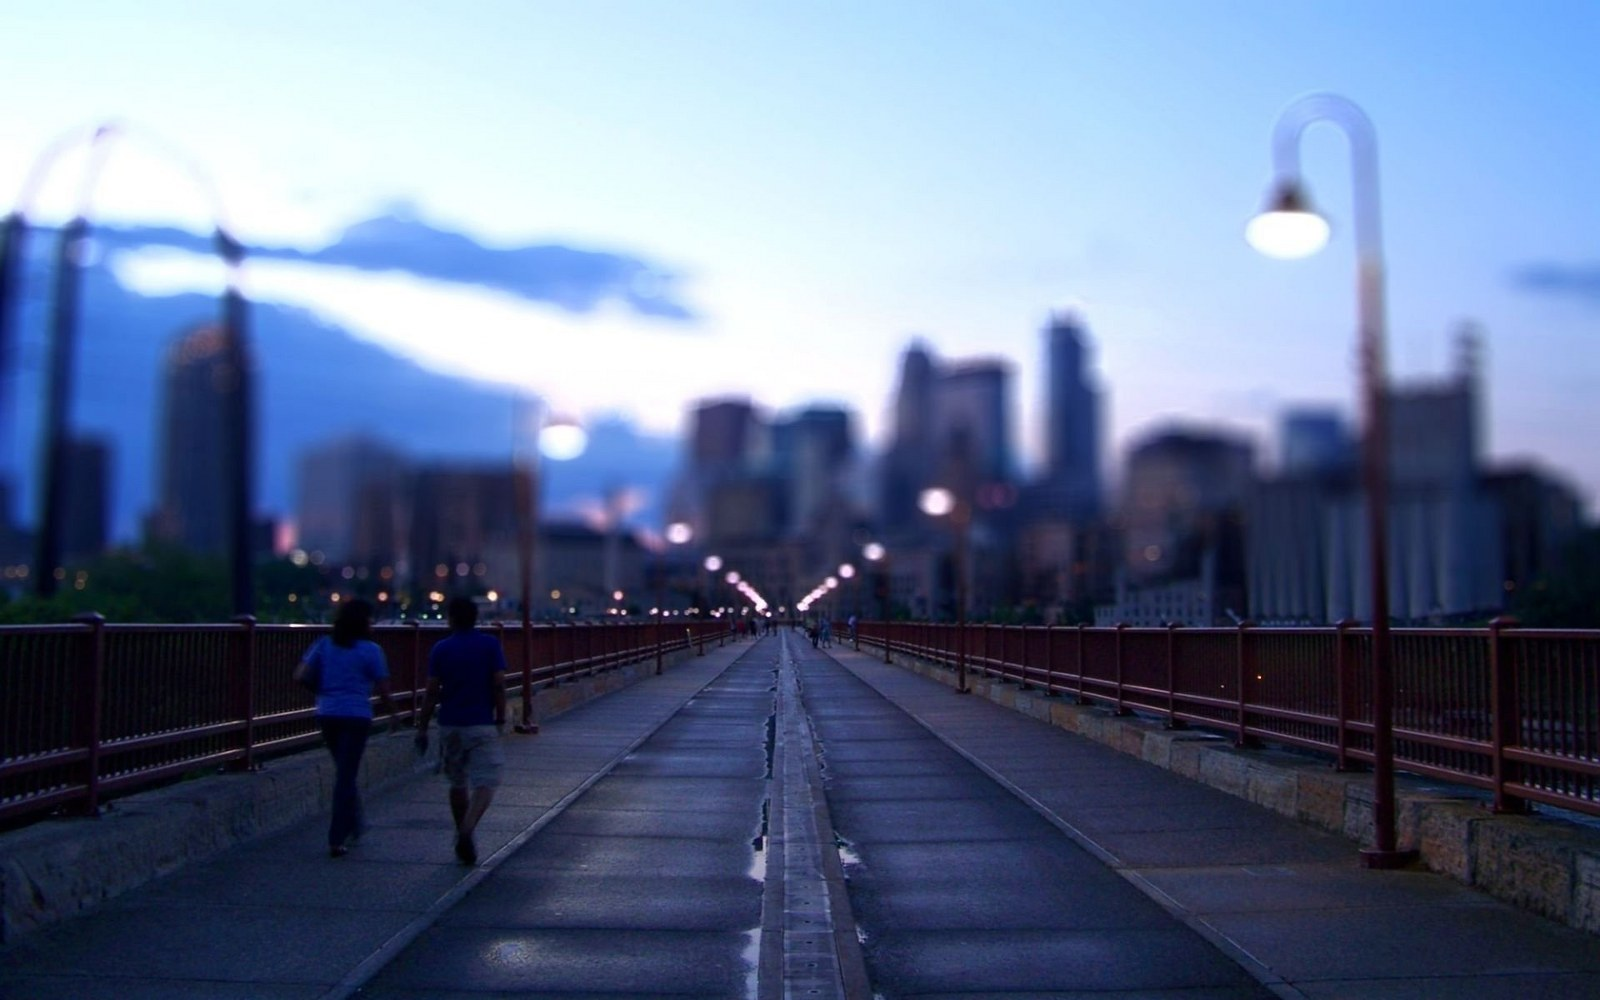 Bridge At City Town View wallpapers55com   Best Wallpapers for PCs 1600x1000